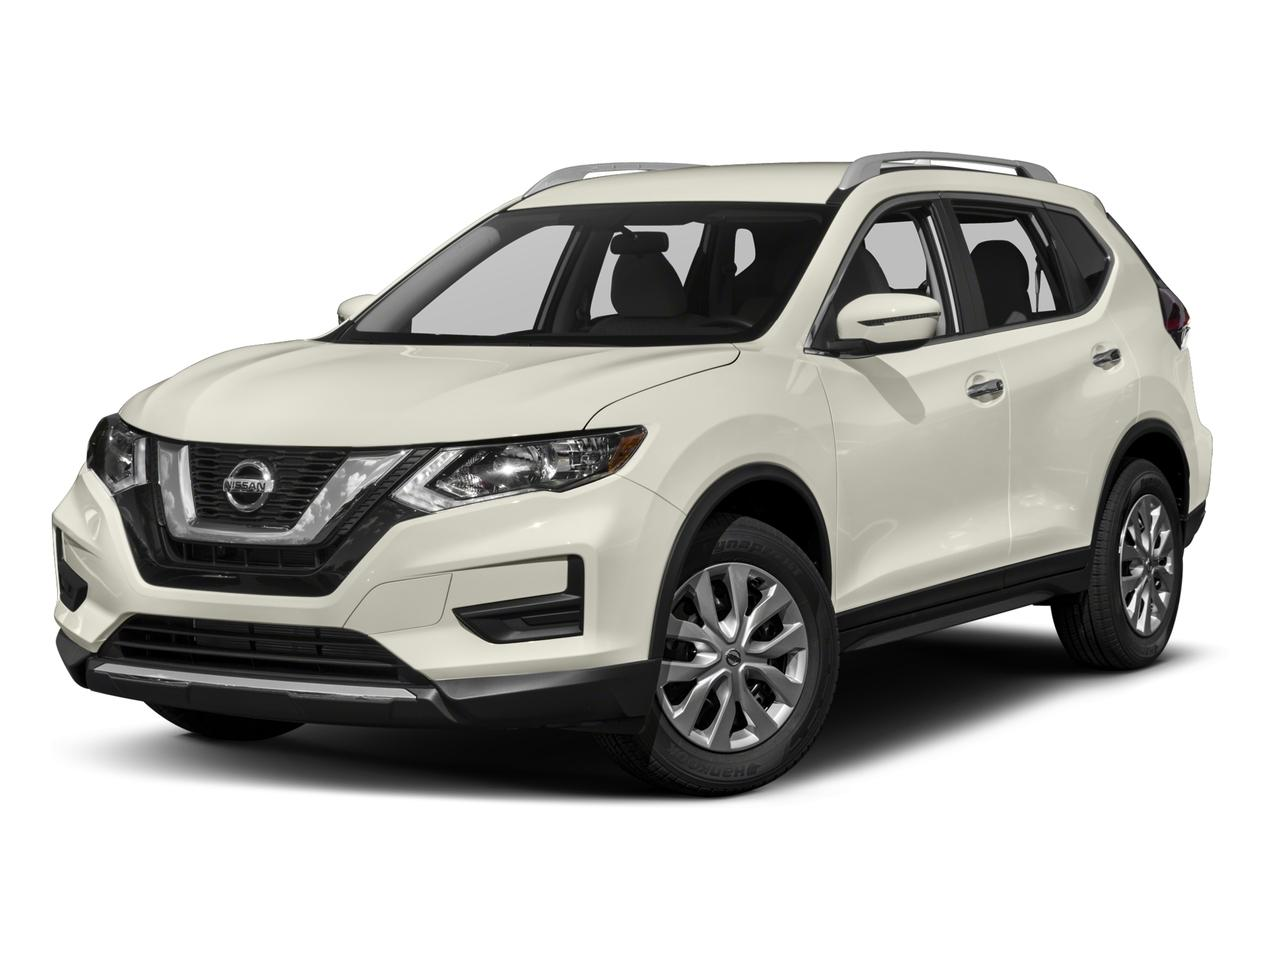 2017 Nissan Rogue Vehicle Photo in American Fork, UT 84003